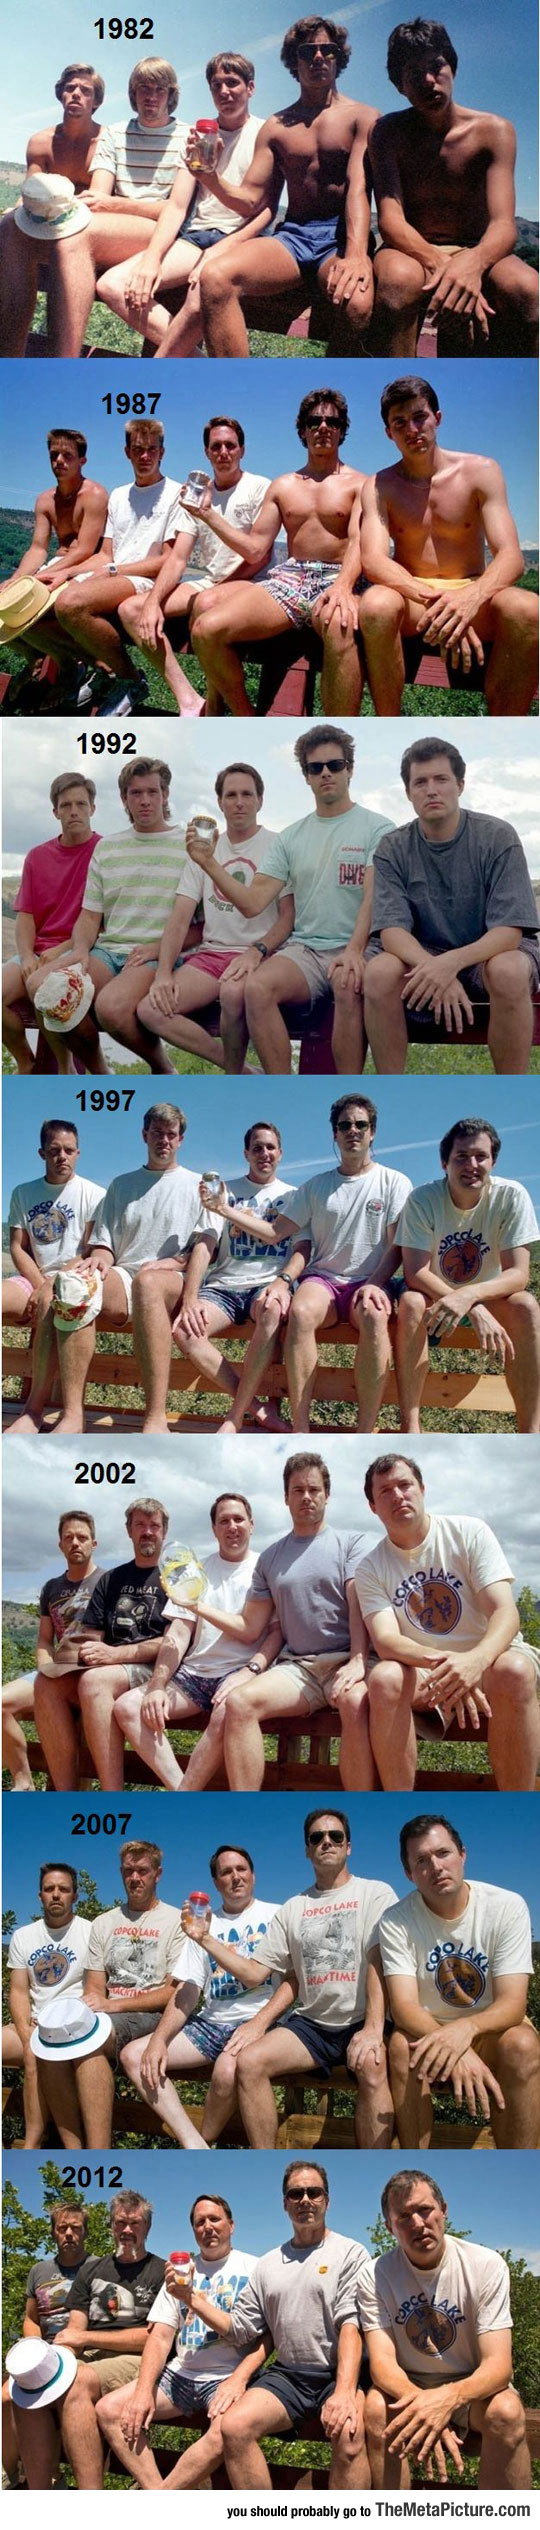 This Group Of Friends Took A Picture Every 5 Years